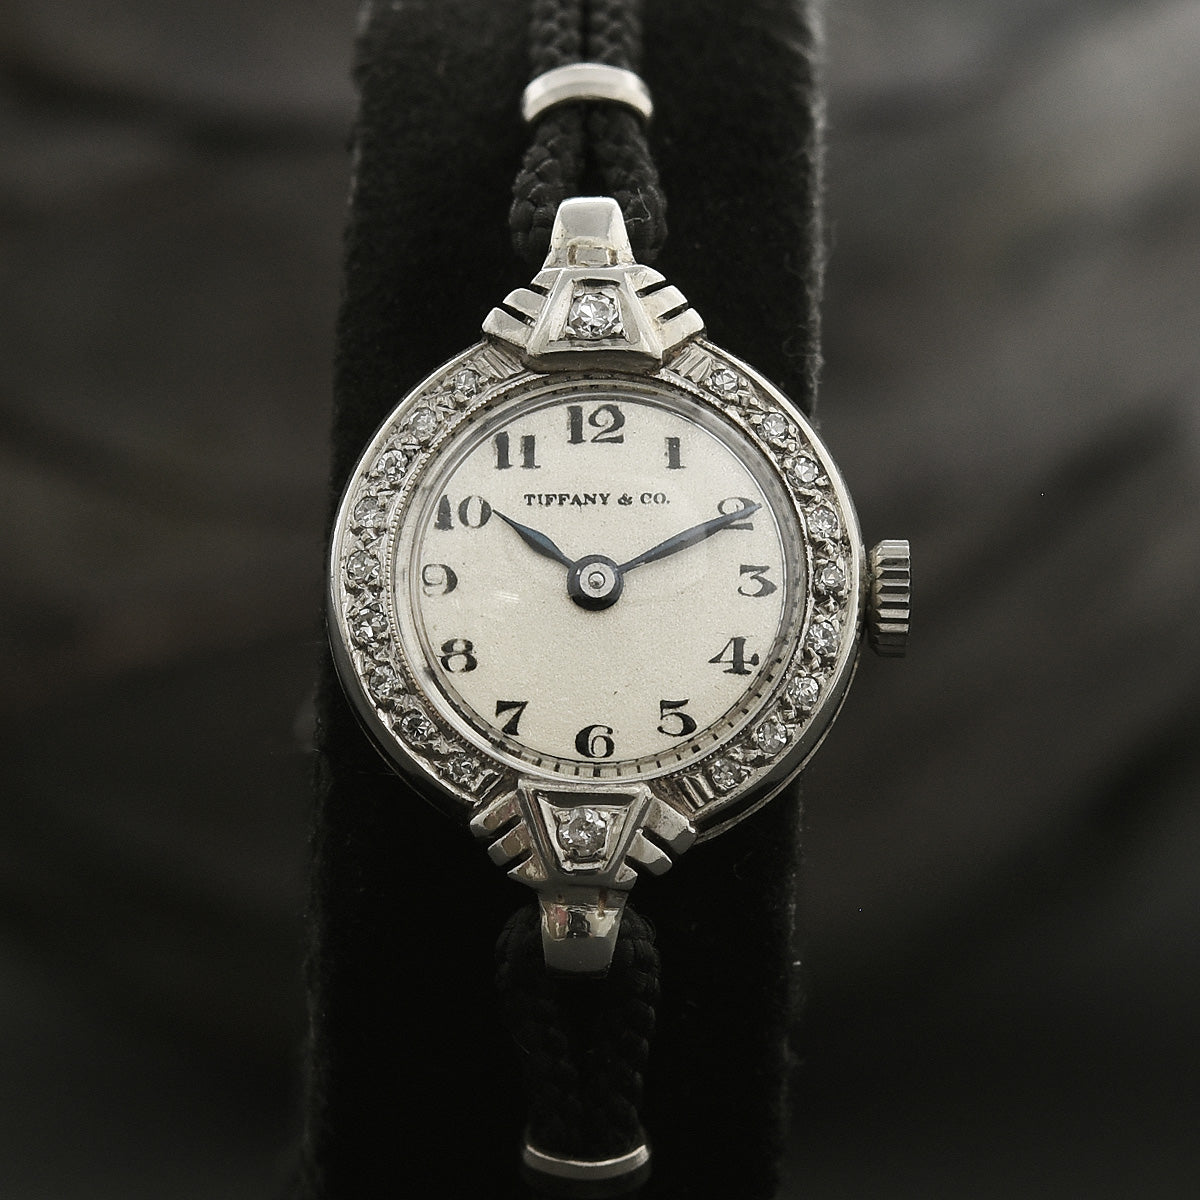 30s TIFFANY Ladies 14K Gold/Diamonds Art Deco Watch